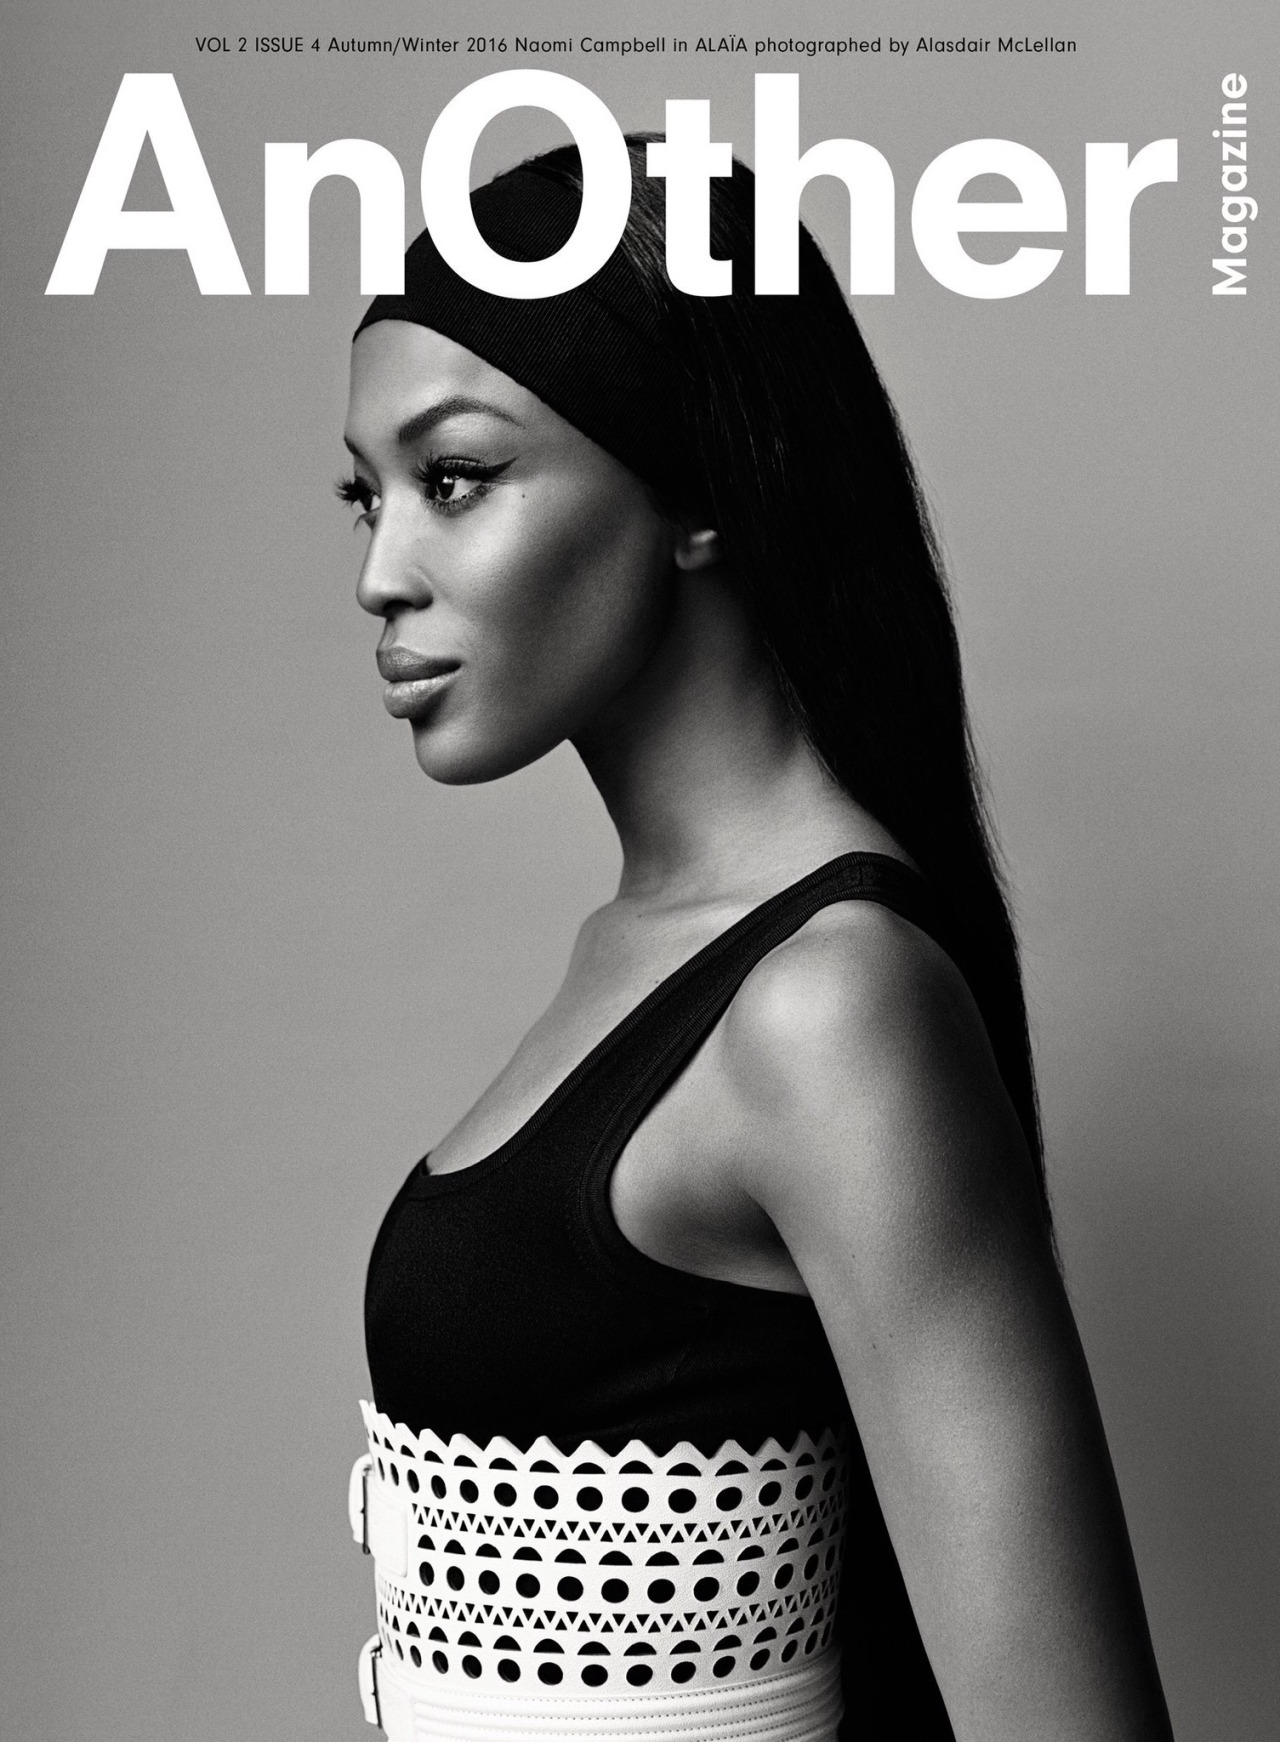 Naomi-Campbell-photographed-by-Alasdair-McLellan-for-AnOther-Magazine-AW16 (1)